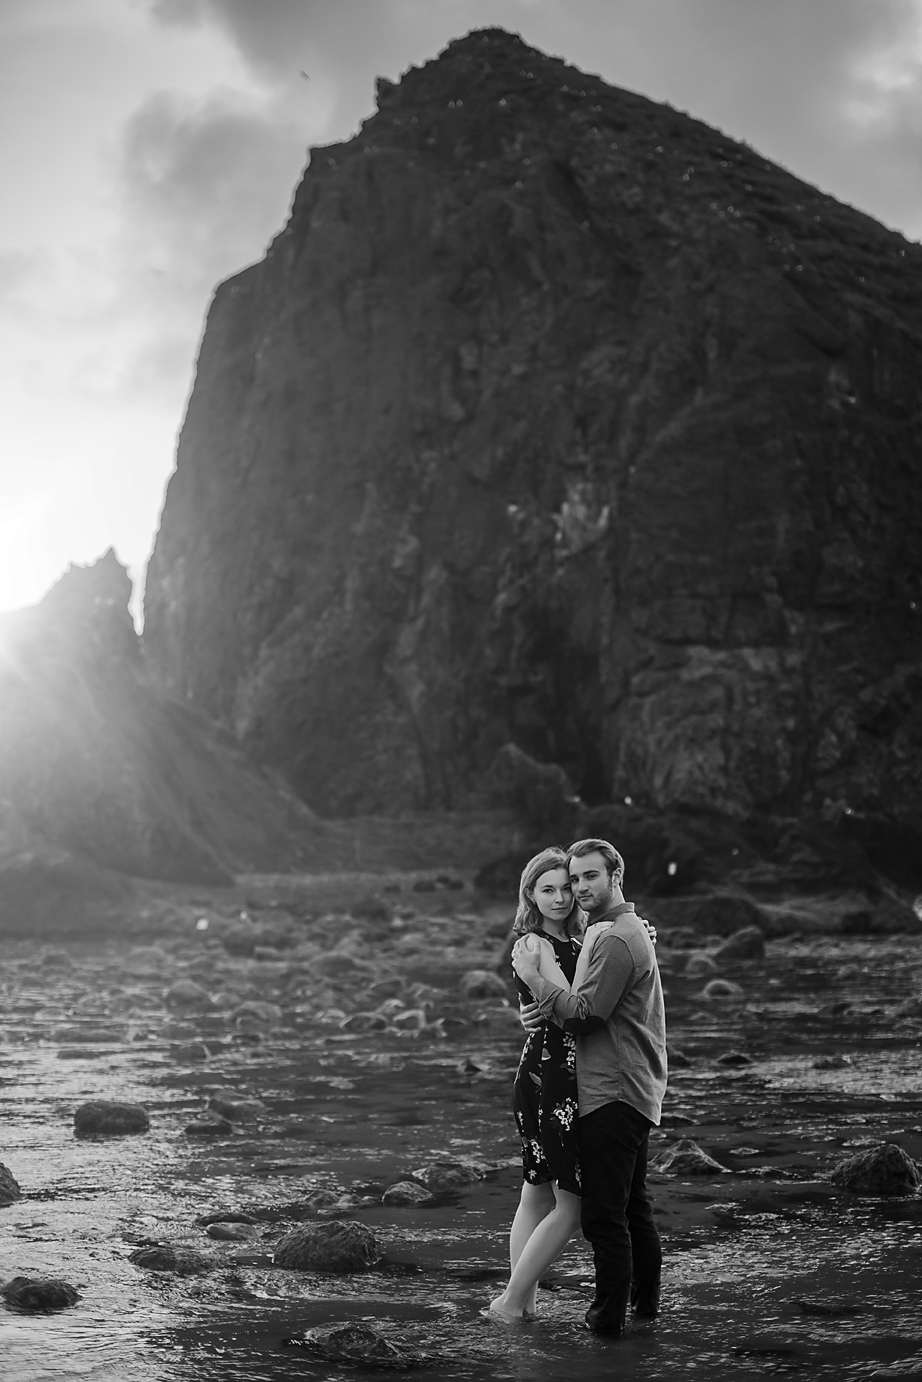 Amanda + Matt - Oregon Coast Engagement Photographer - Destination Elopement Photographer - Emily & Co. Photography (14).jpg